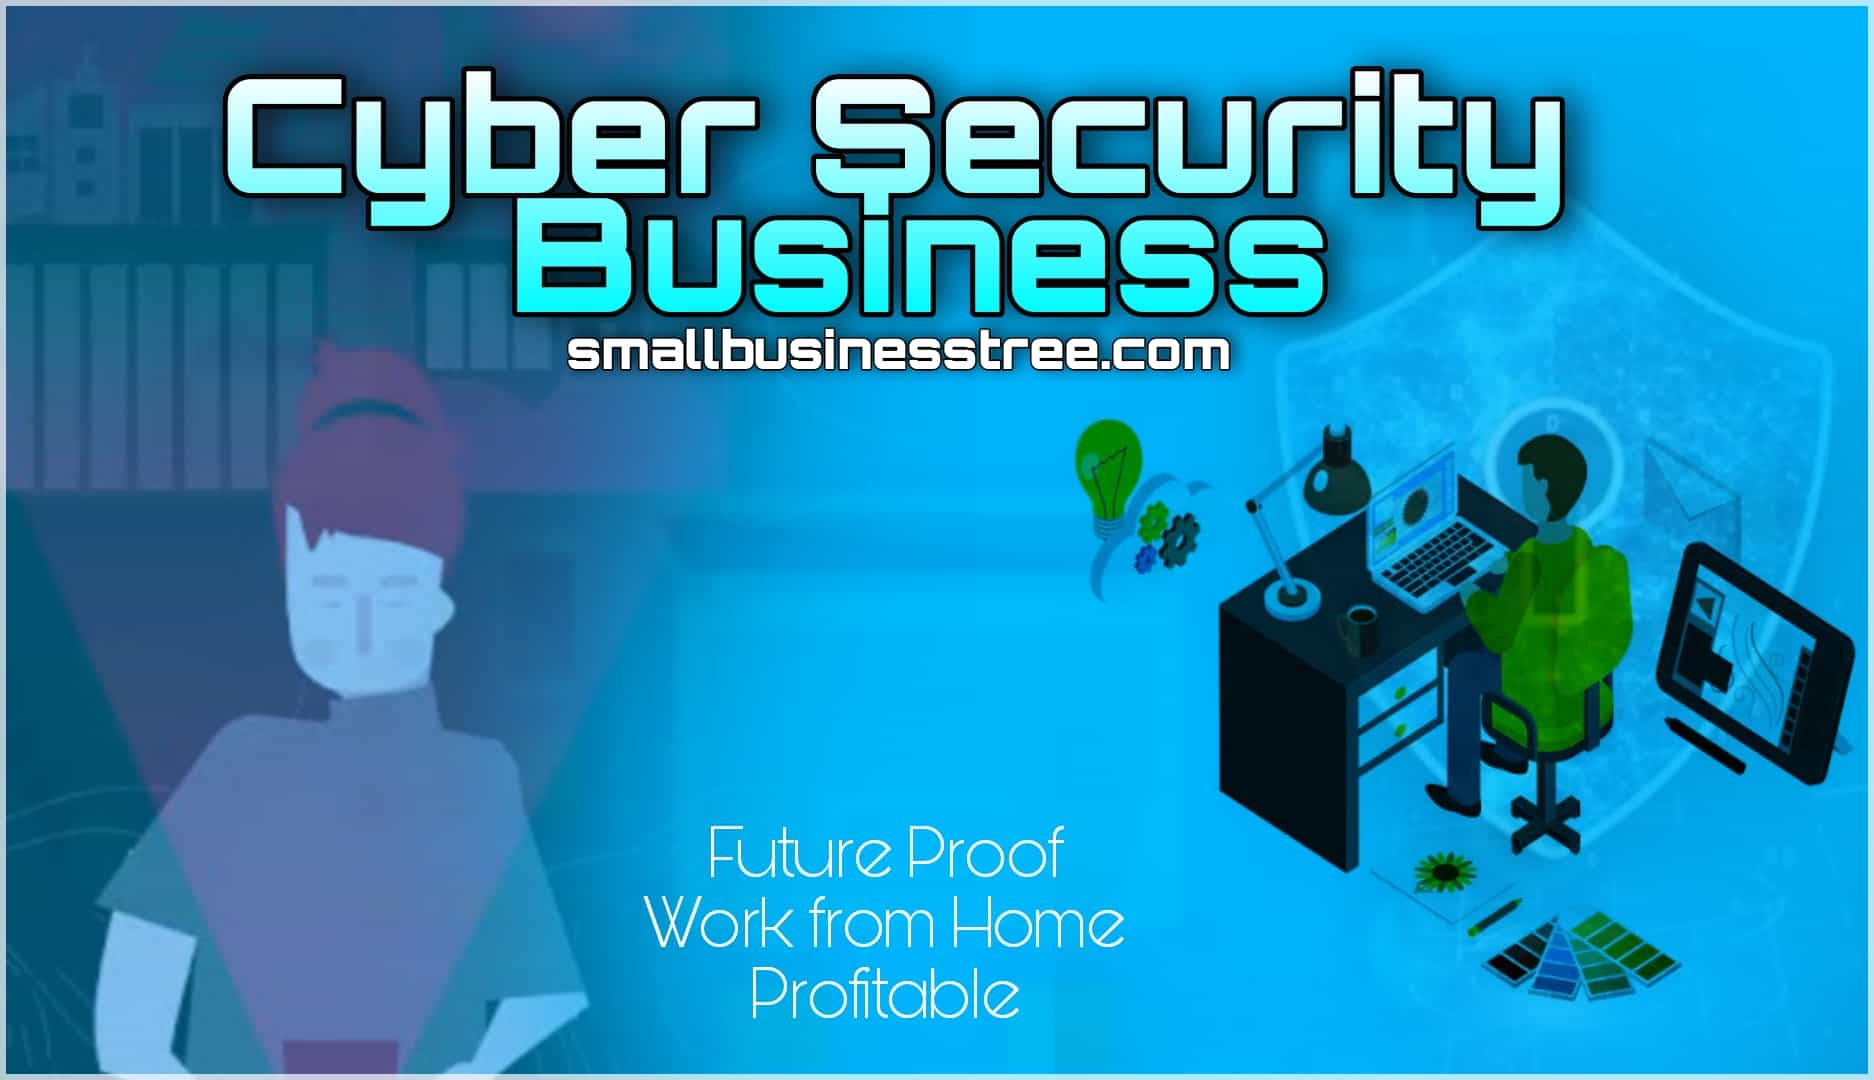 Cyber Security Business in USA